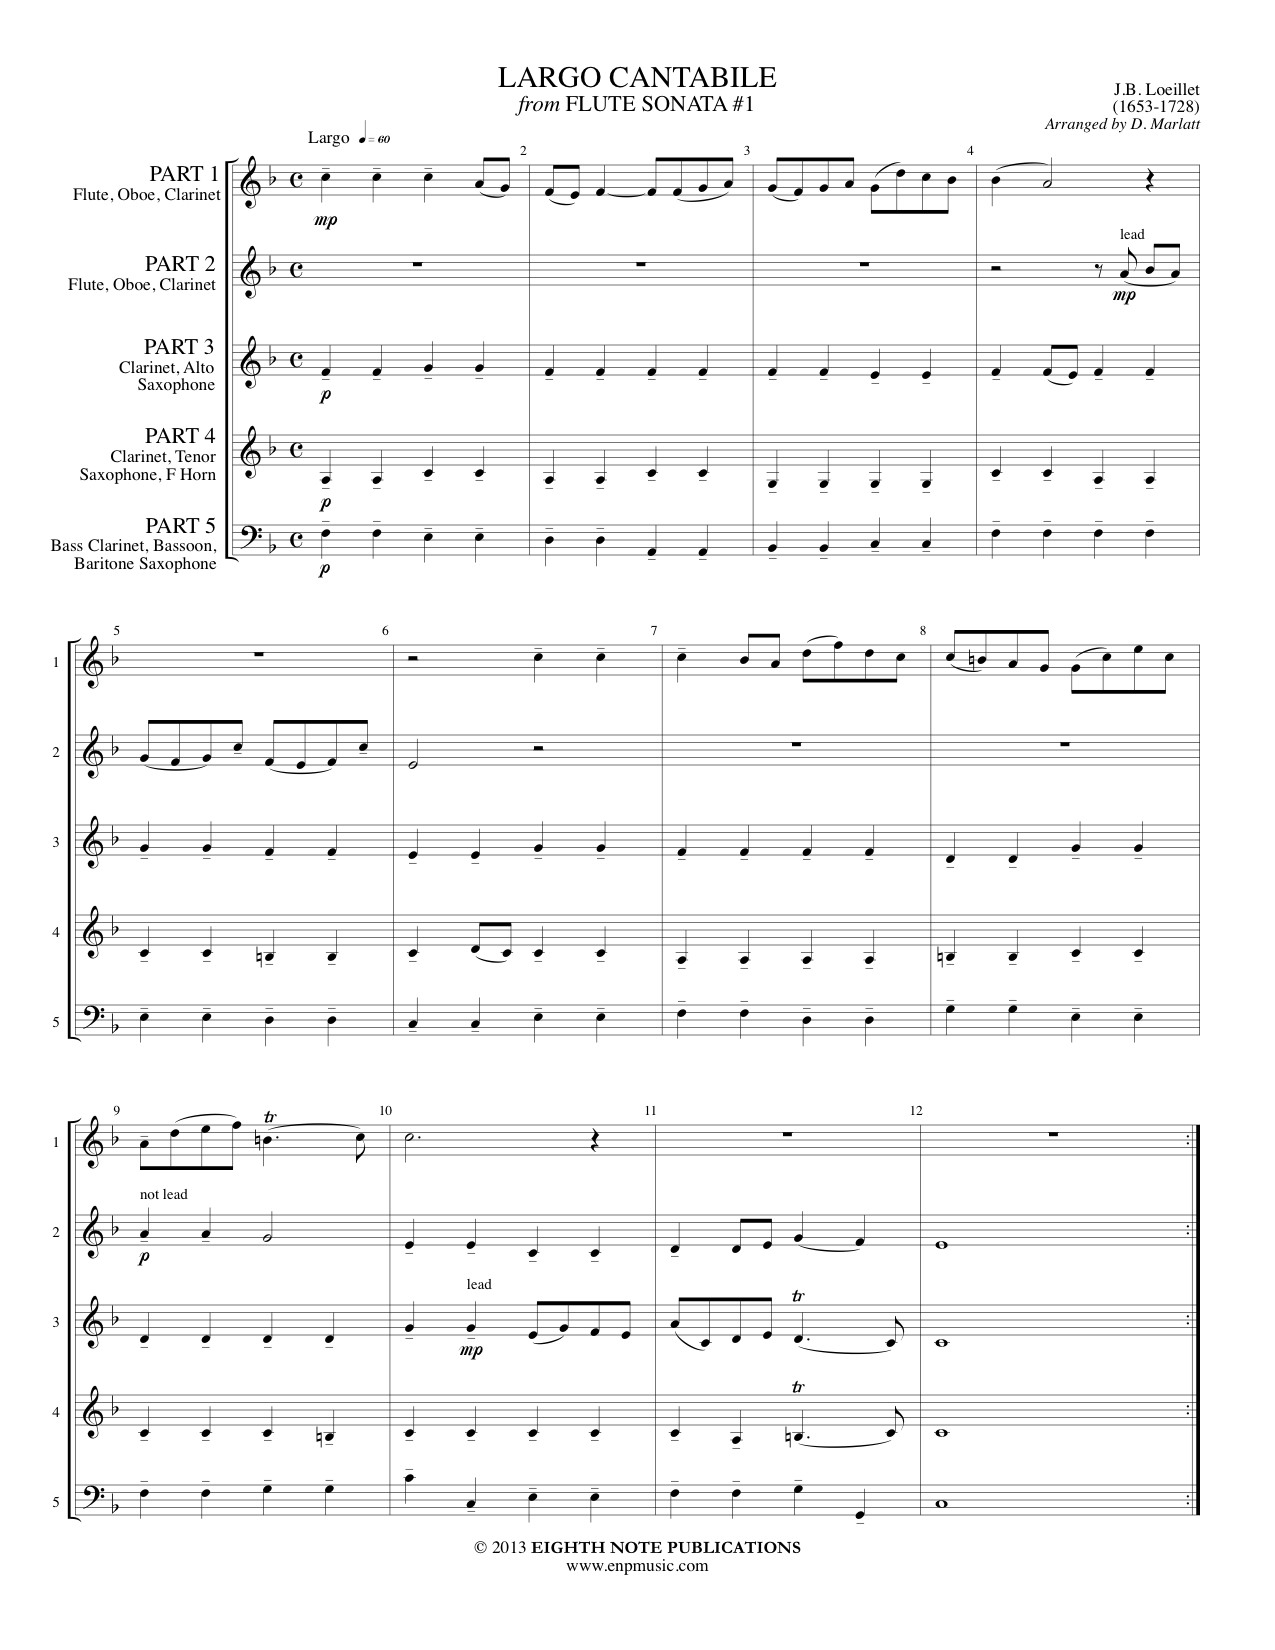 the beauty of sonata and flute performance music essay Ives' piano sonata no 2, concord he took great pains to explain his aims in the essays before a sonata the first movement of the sonata also uses music from.